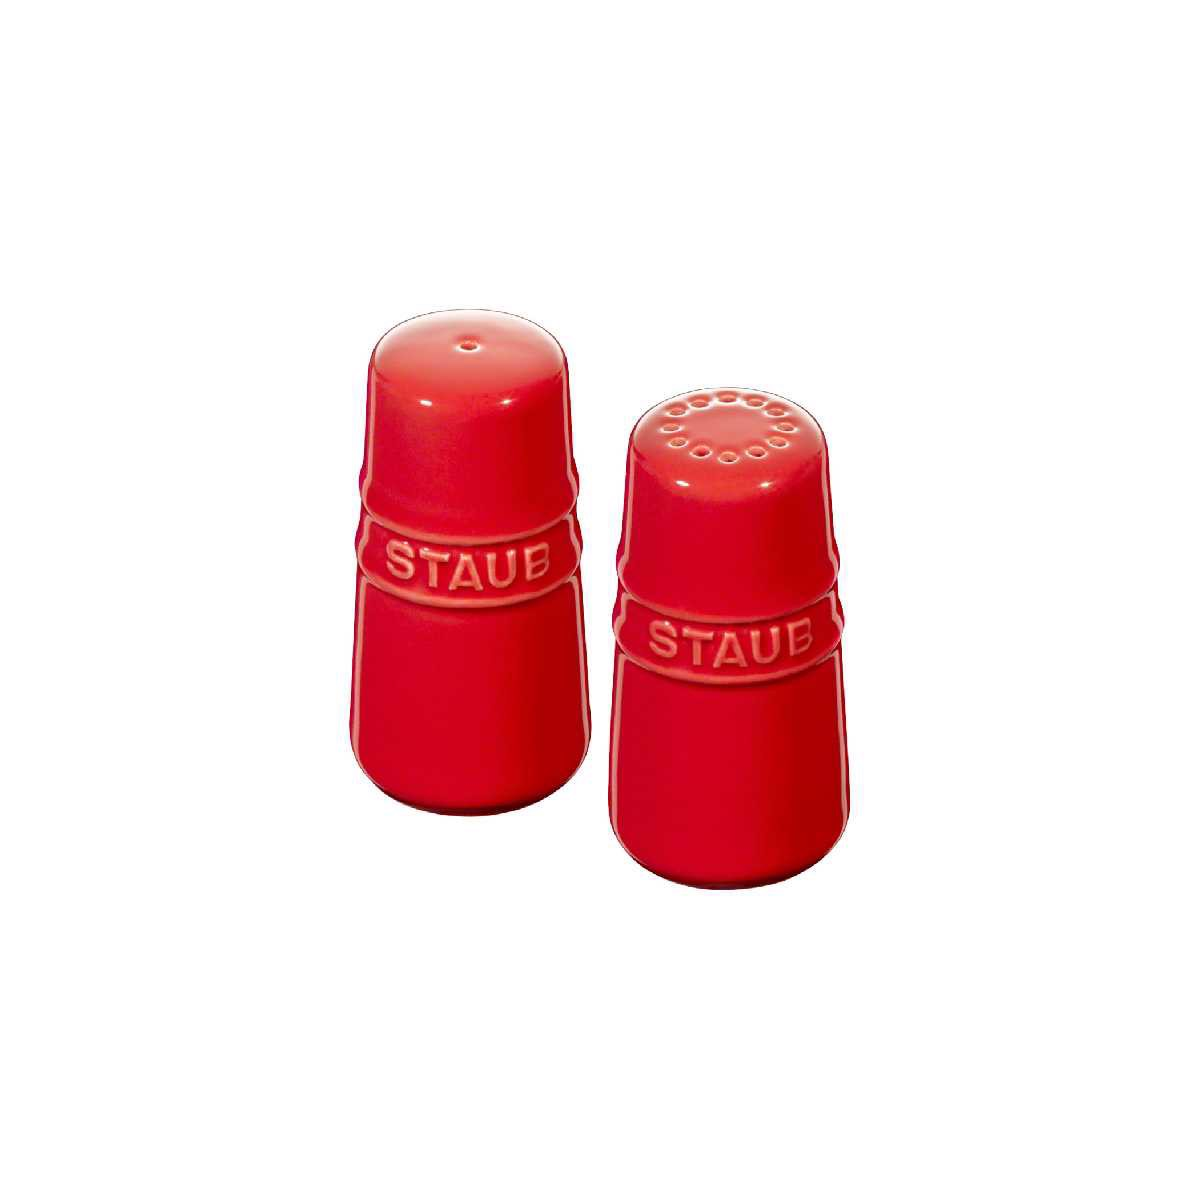 Staub - Salt and Pepper shaker - Cherry